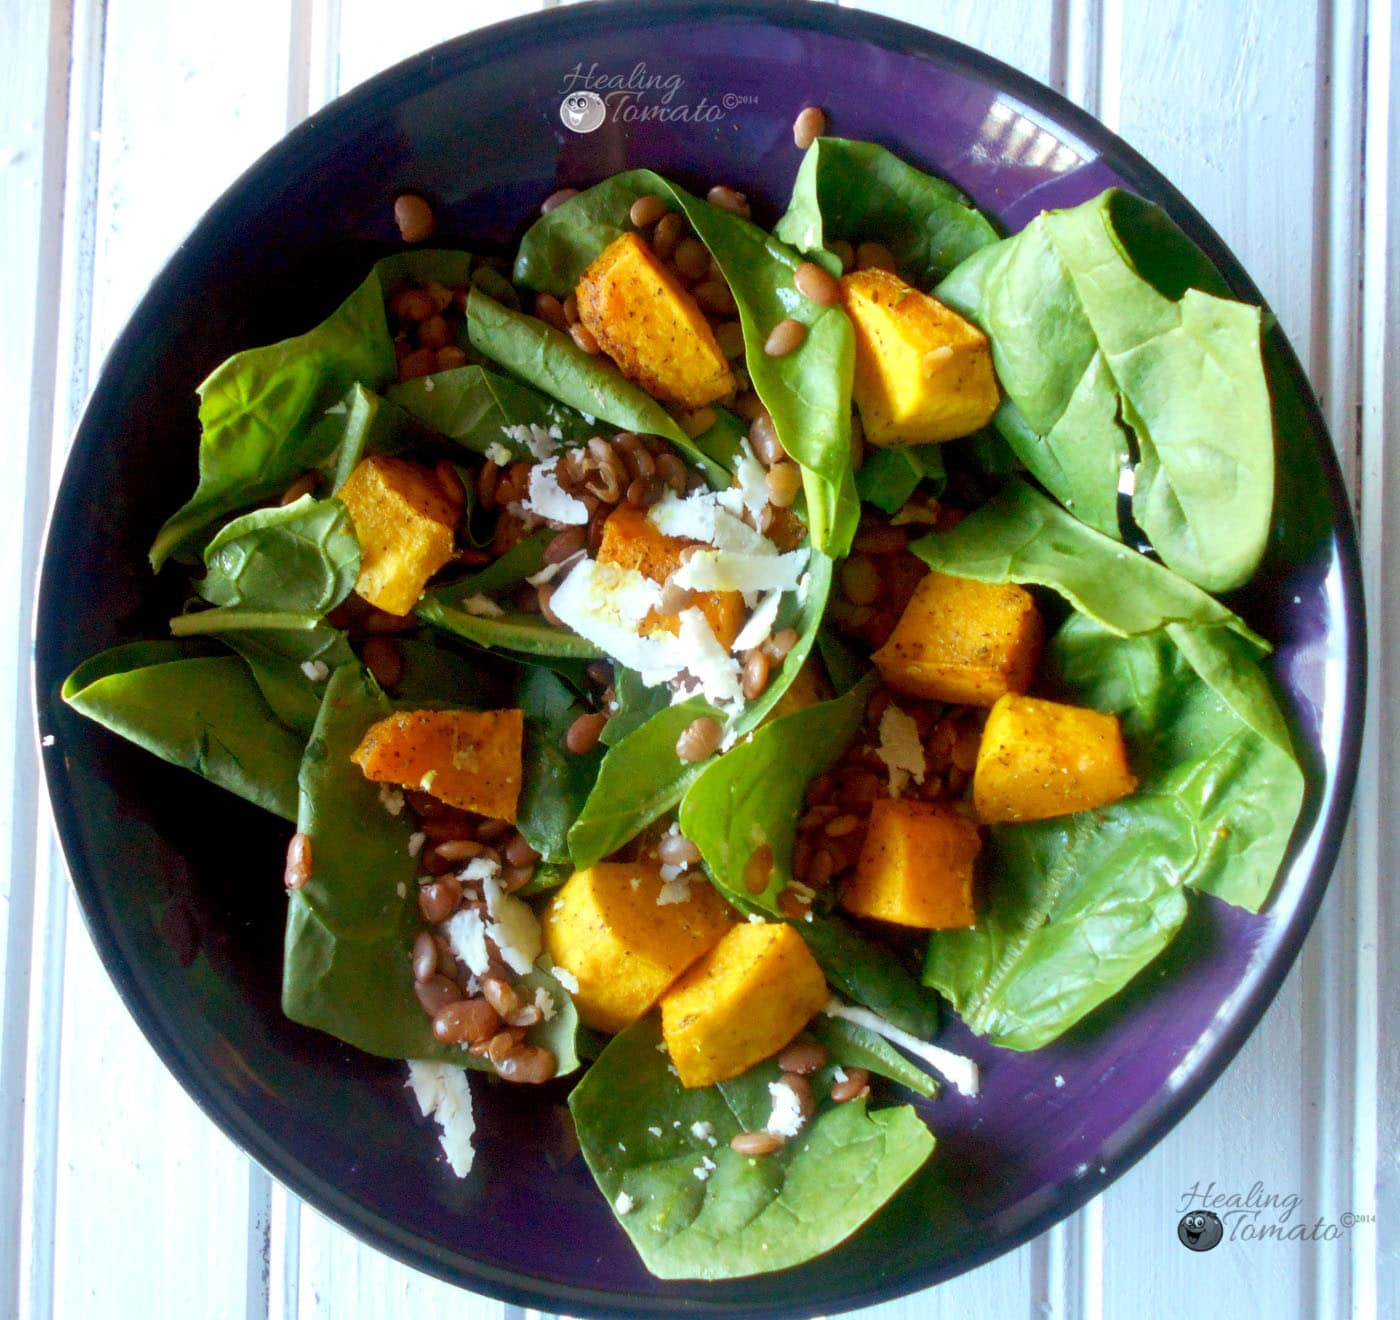 Closeup view of spinach lentil salad withspiced pumpkins